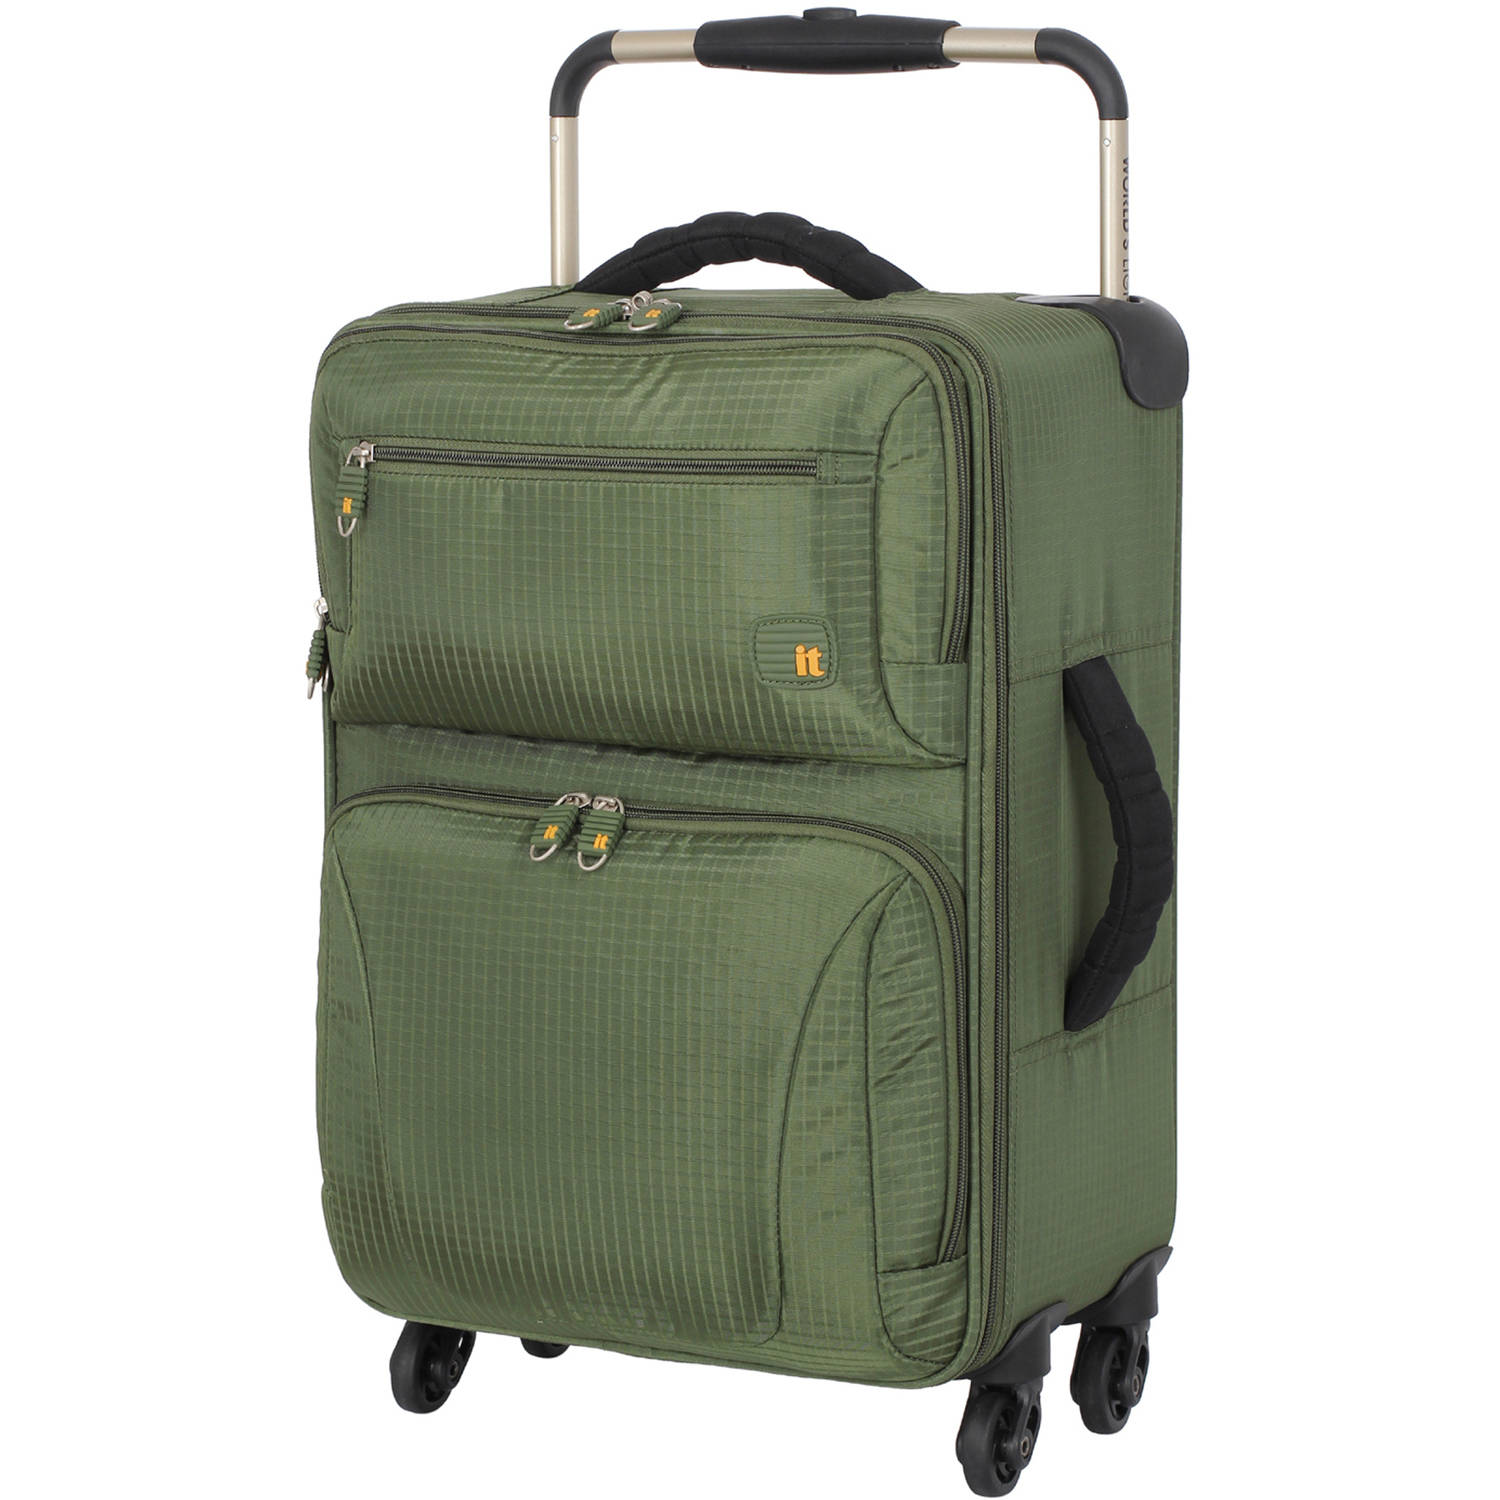 It Luggage 21